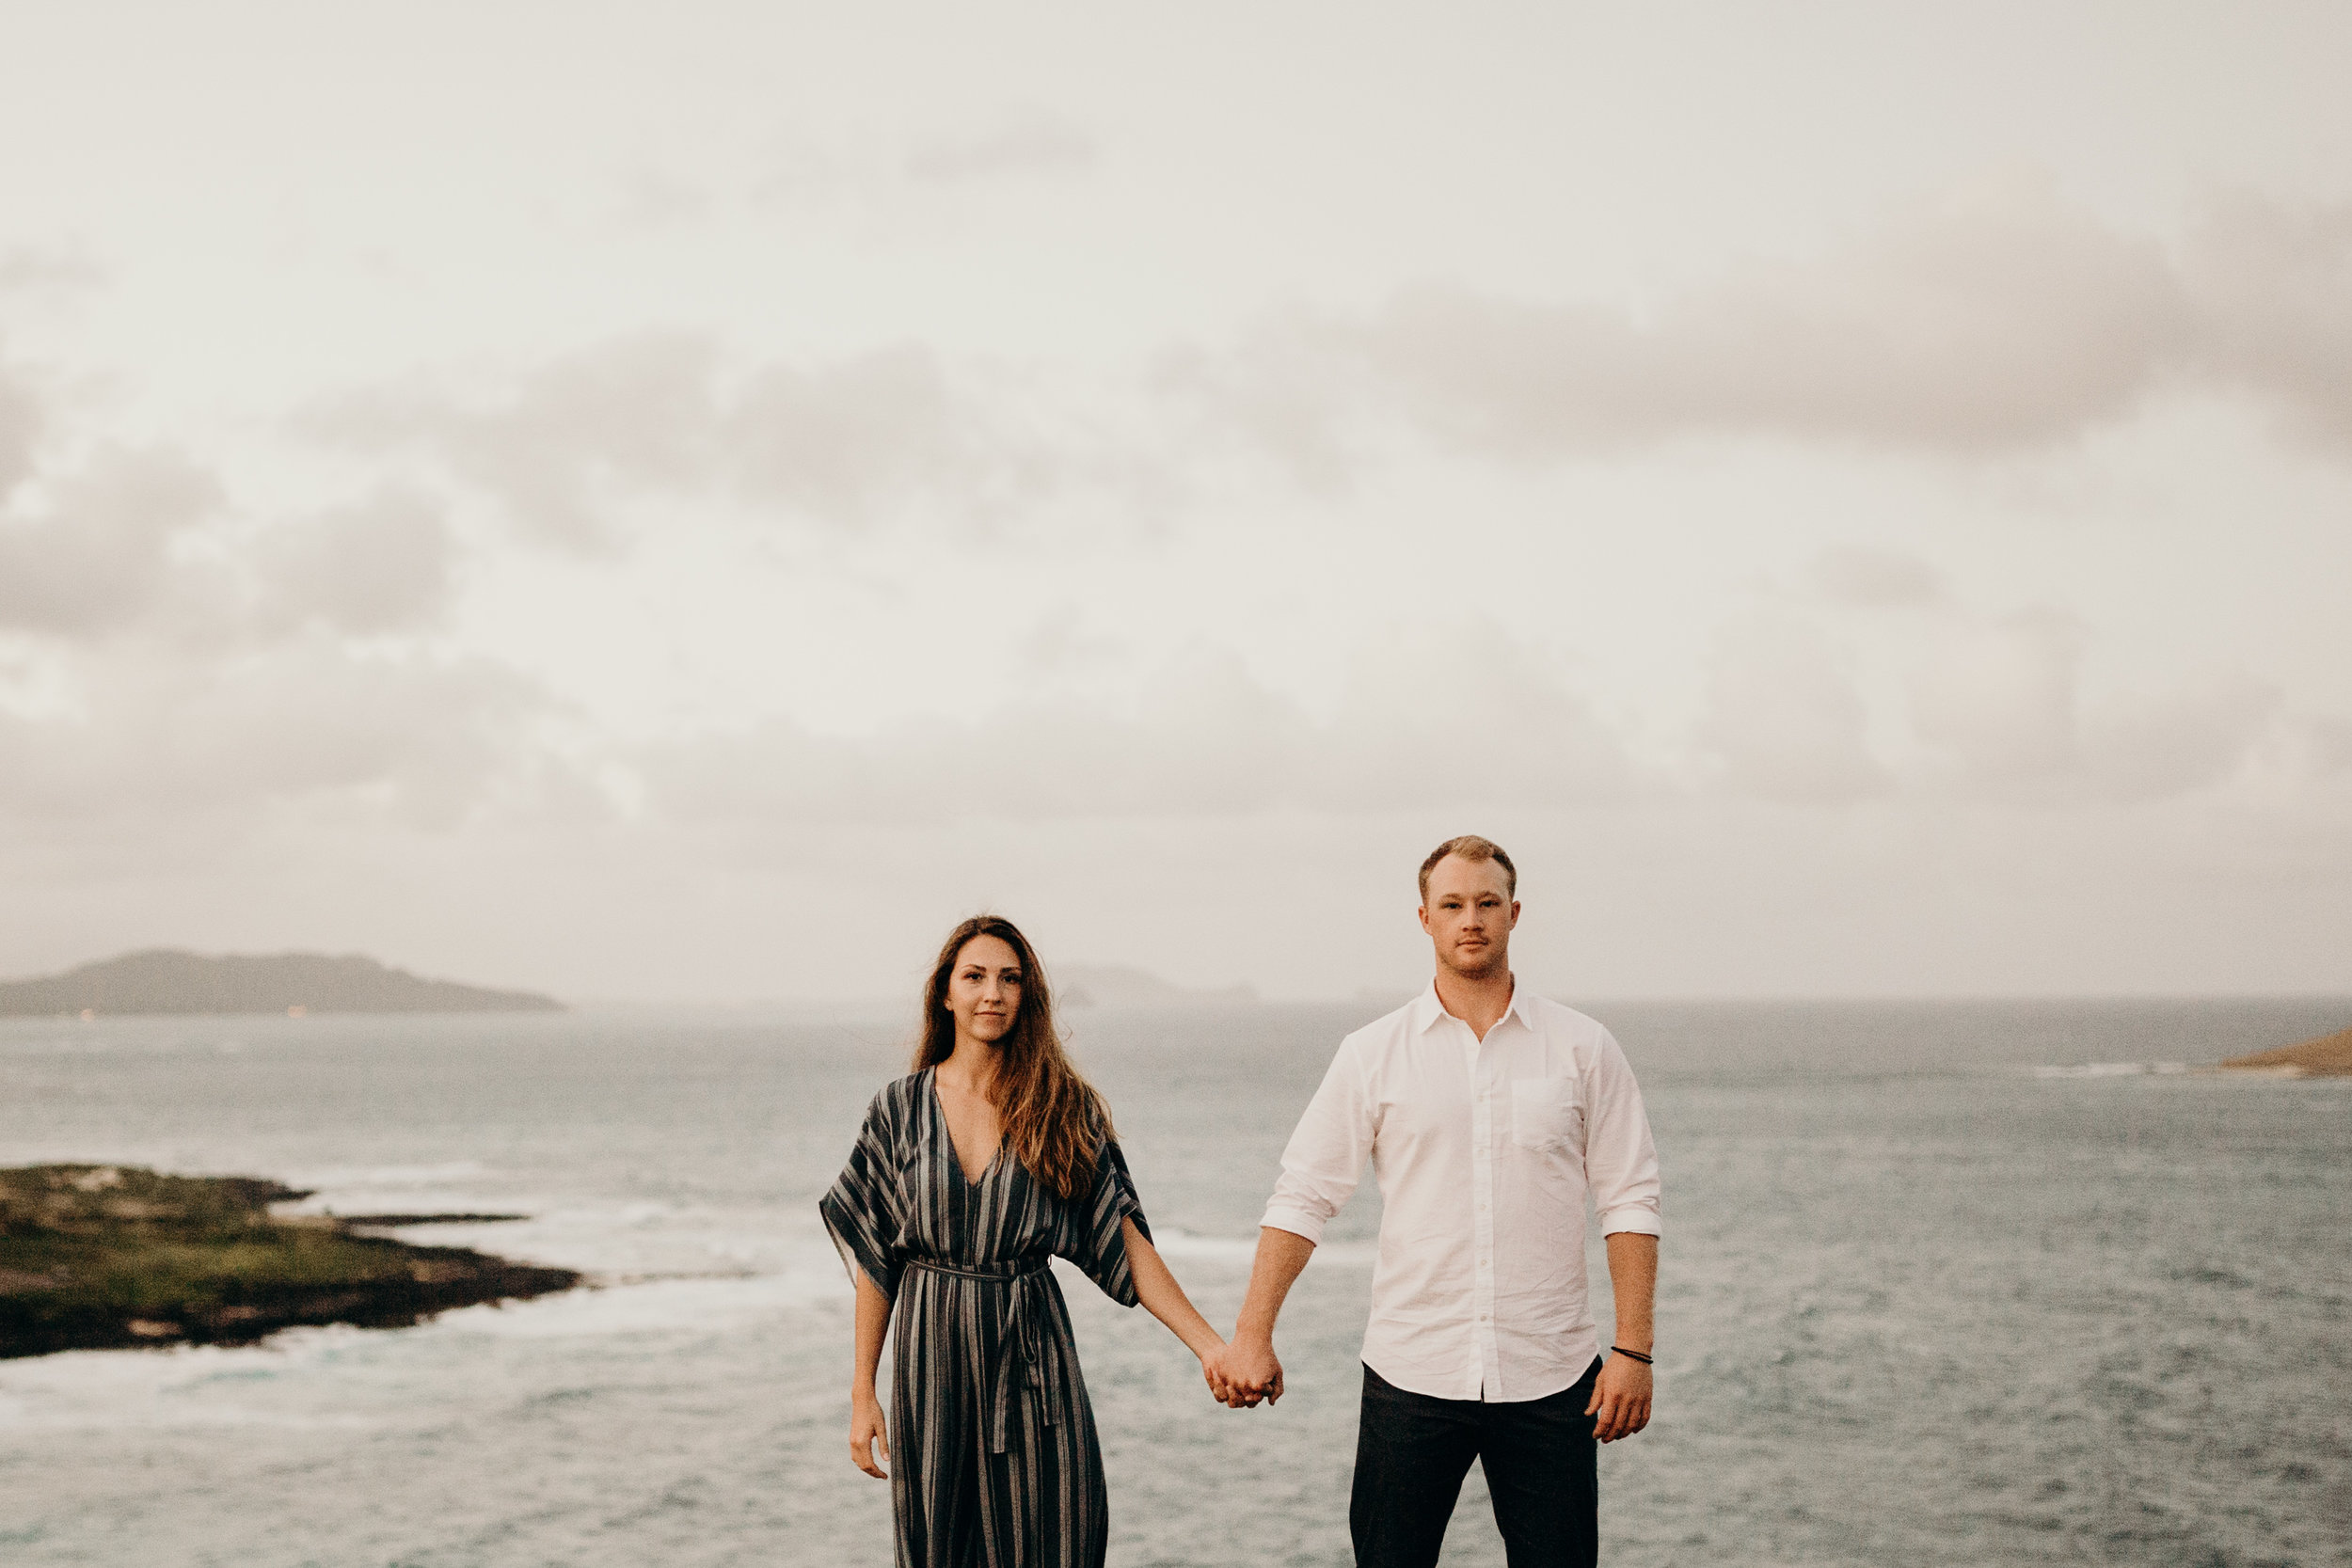 hawaii-engagement-photographer-keani-bakula-makapuu-beach-36.jpg